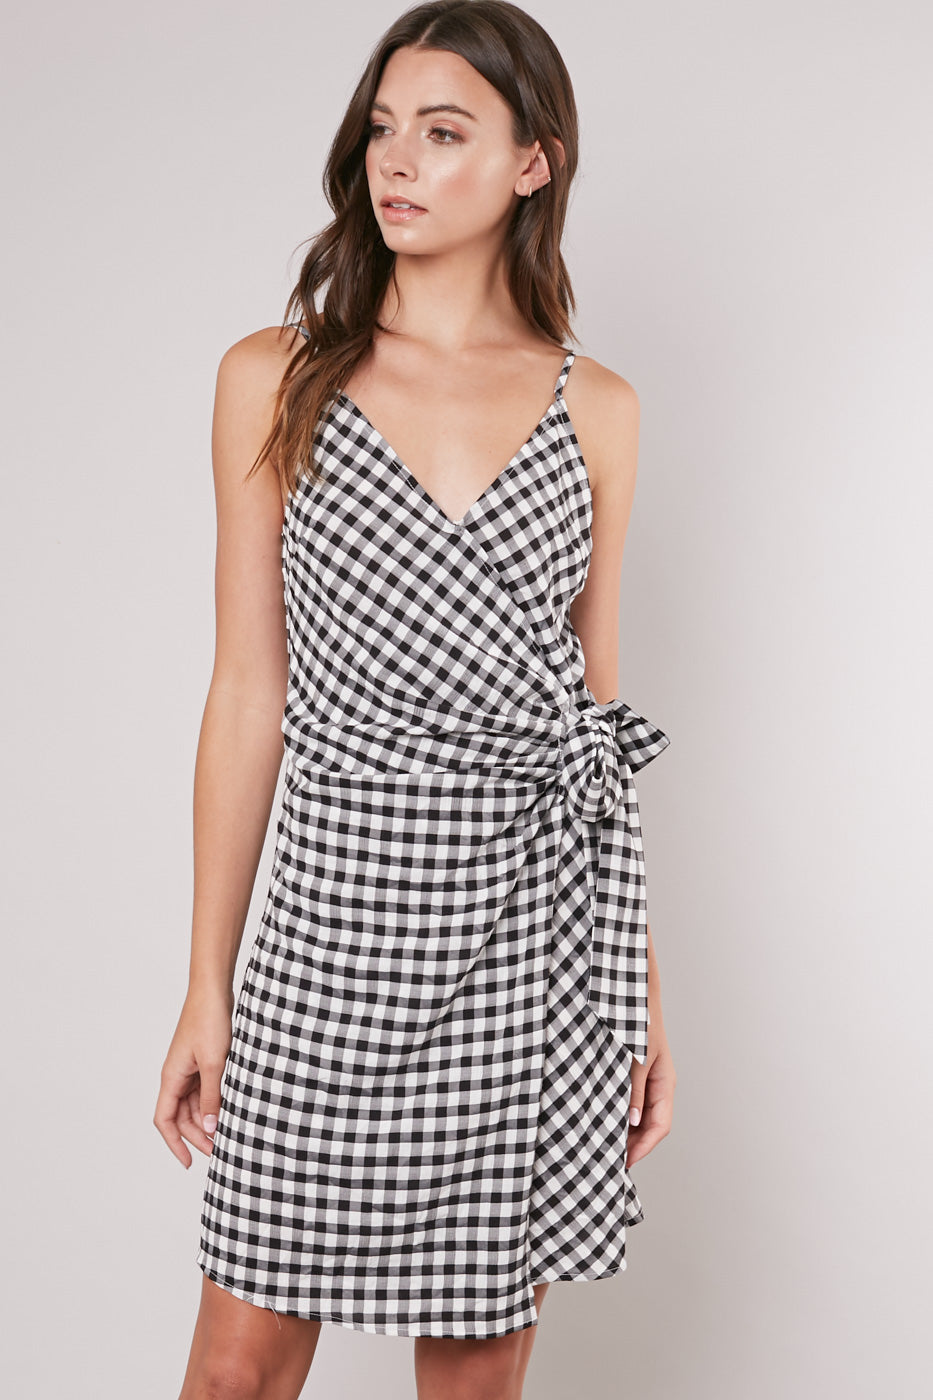 Finish Line Wrap Dress - Hello Addie